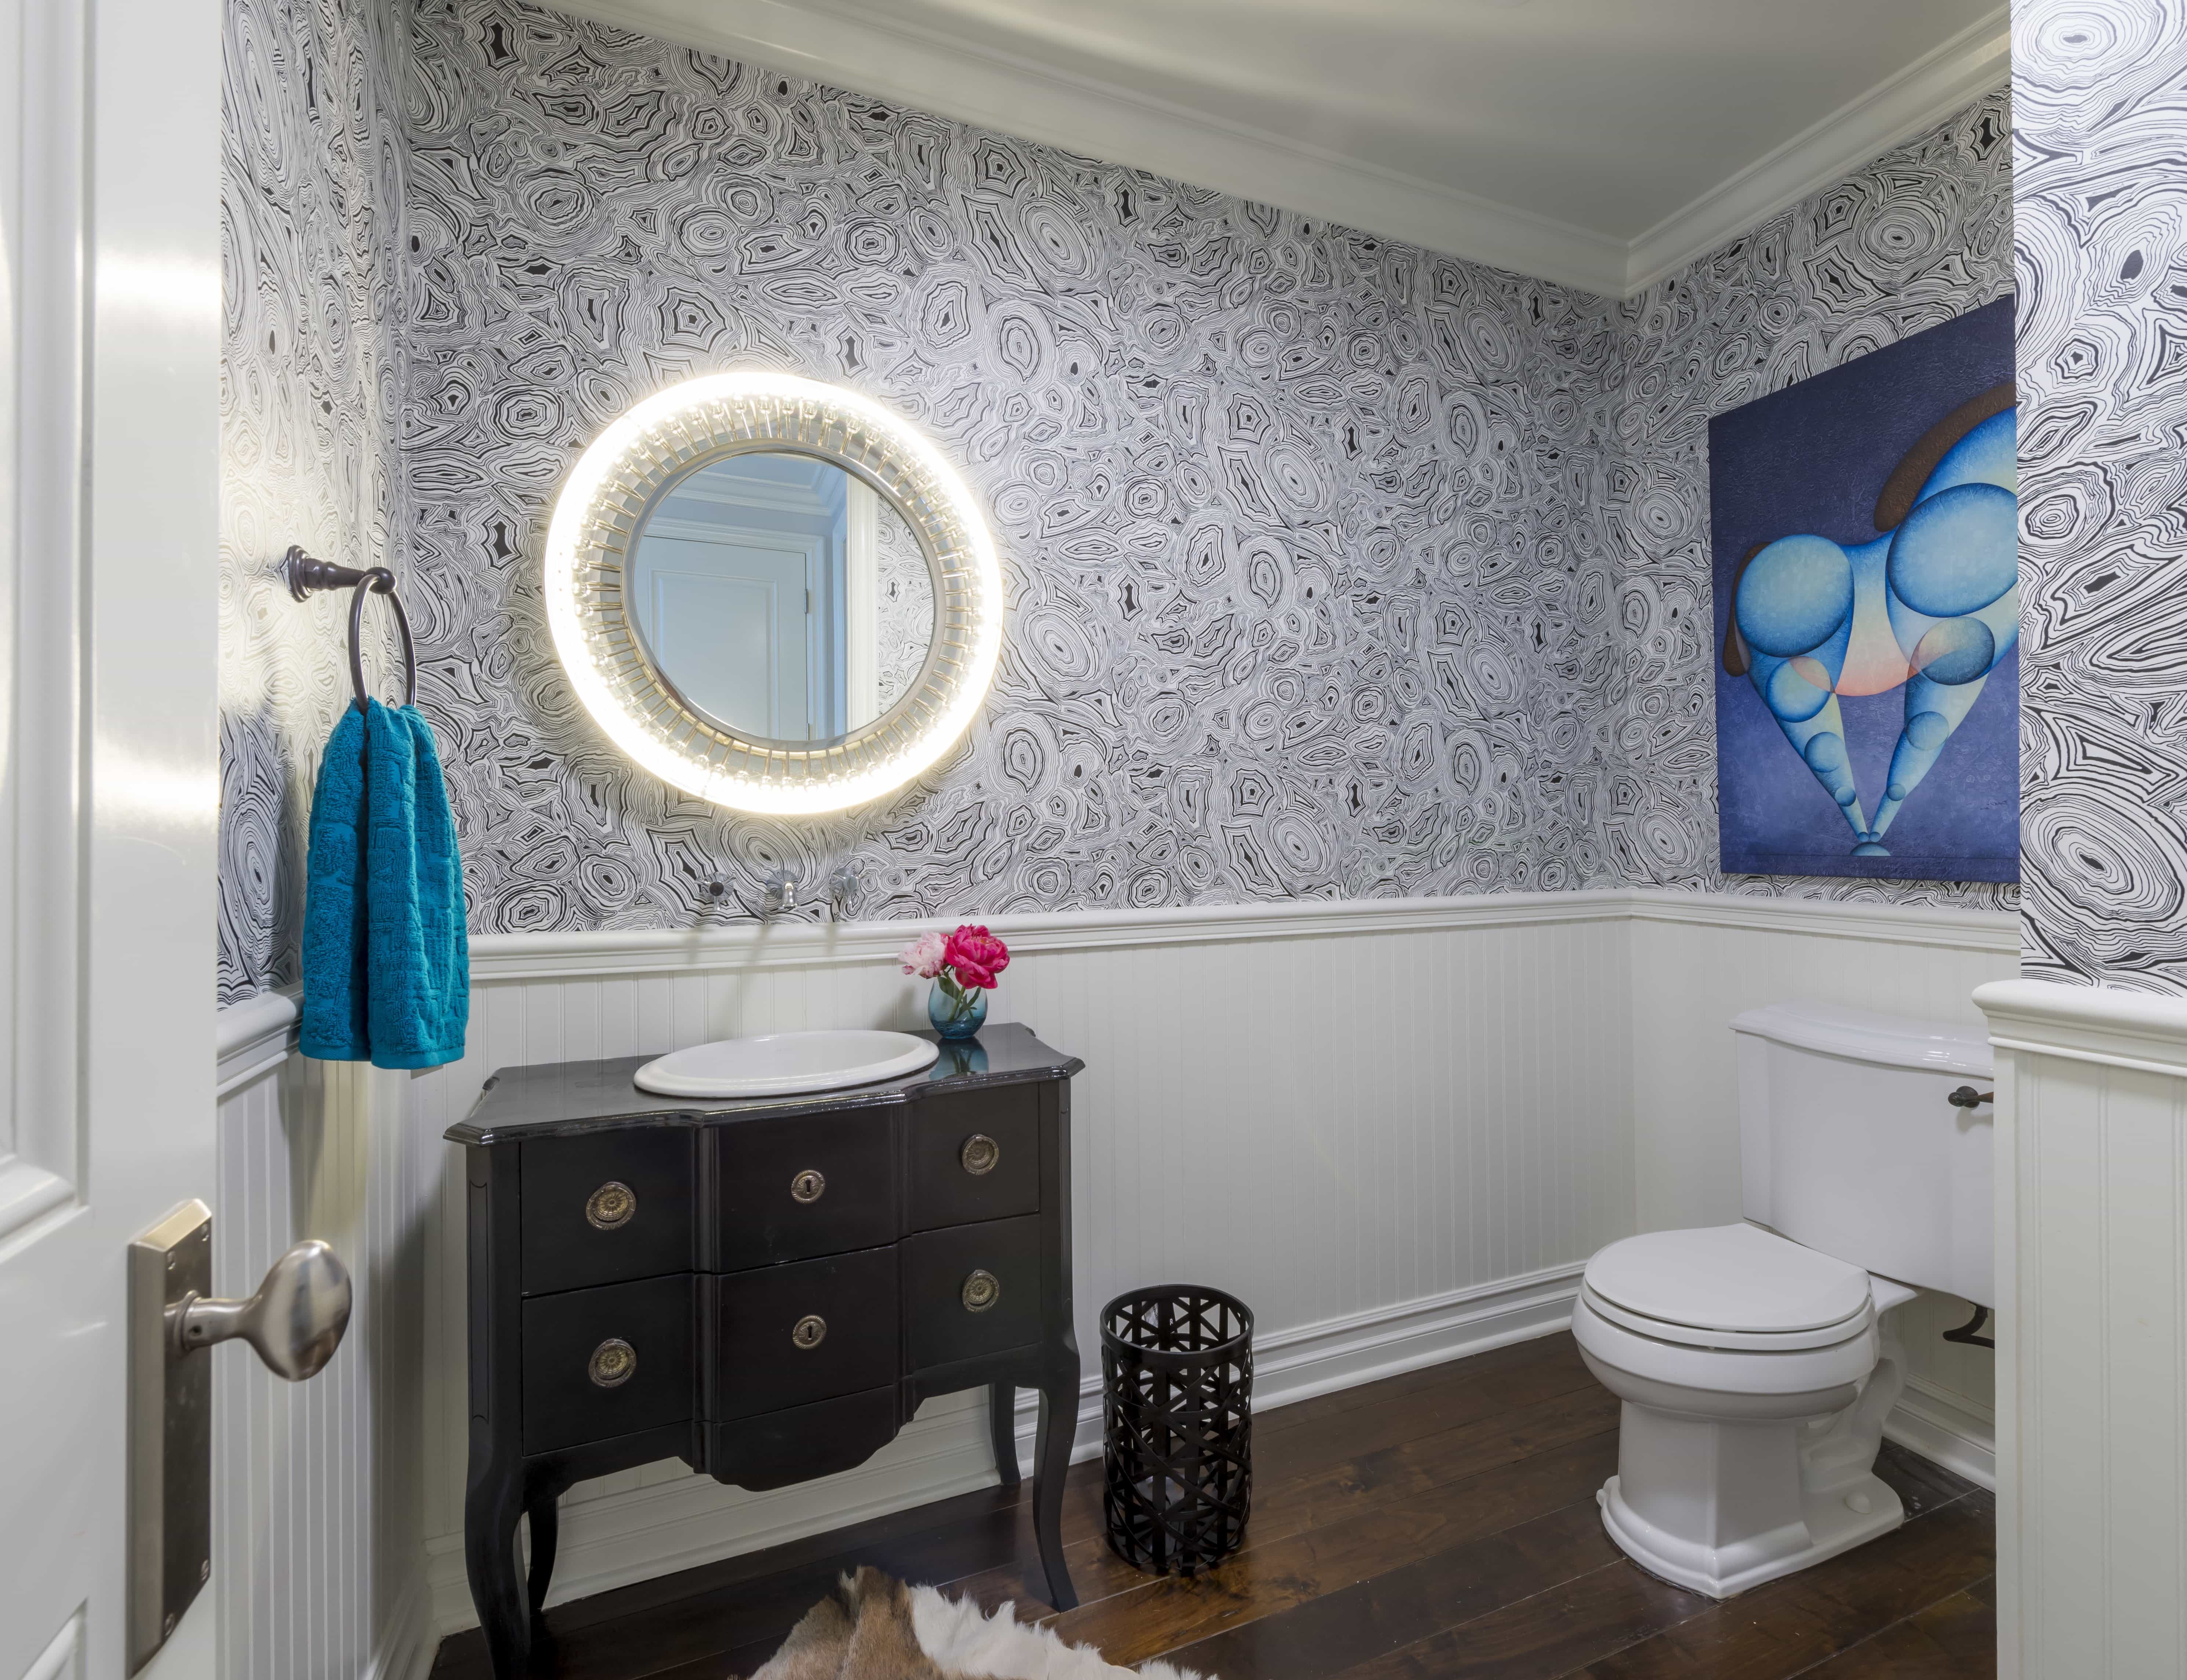 Circular Illuminated Mirror For Toilet Decoration (Image 2 of 8)